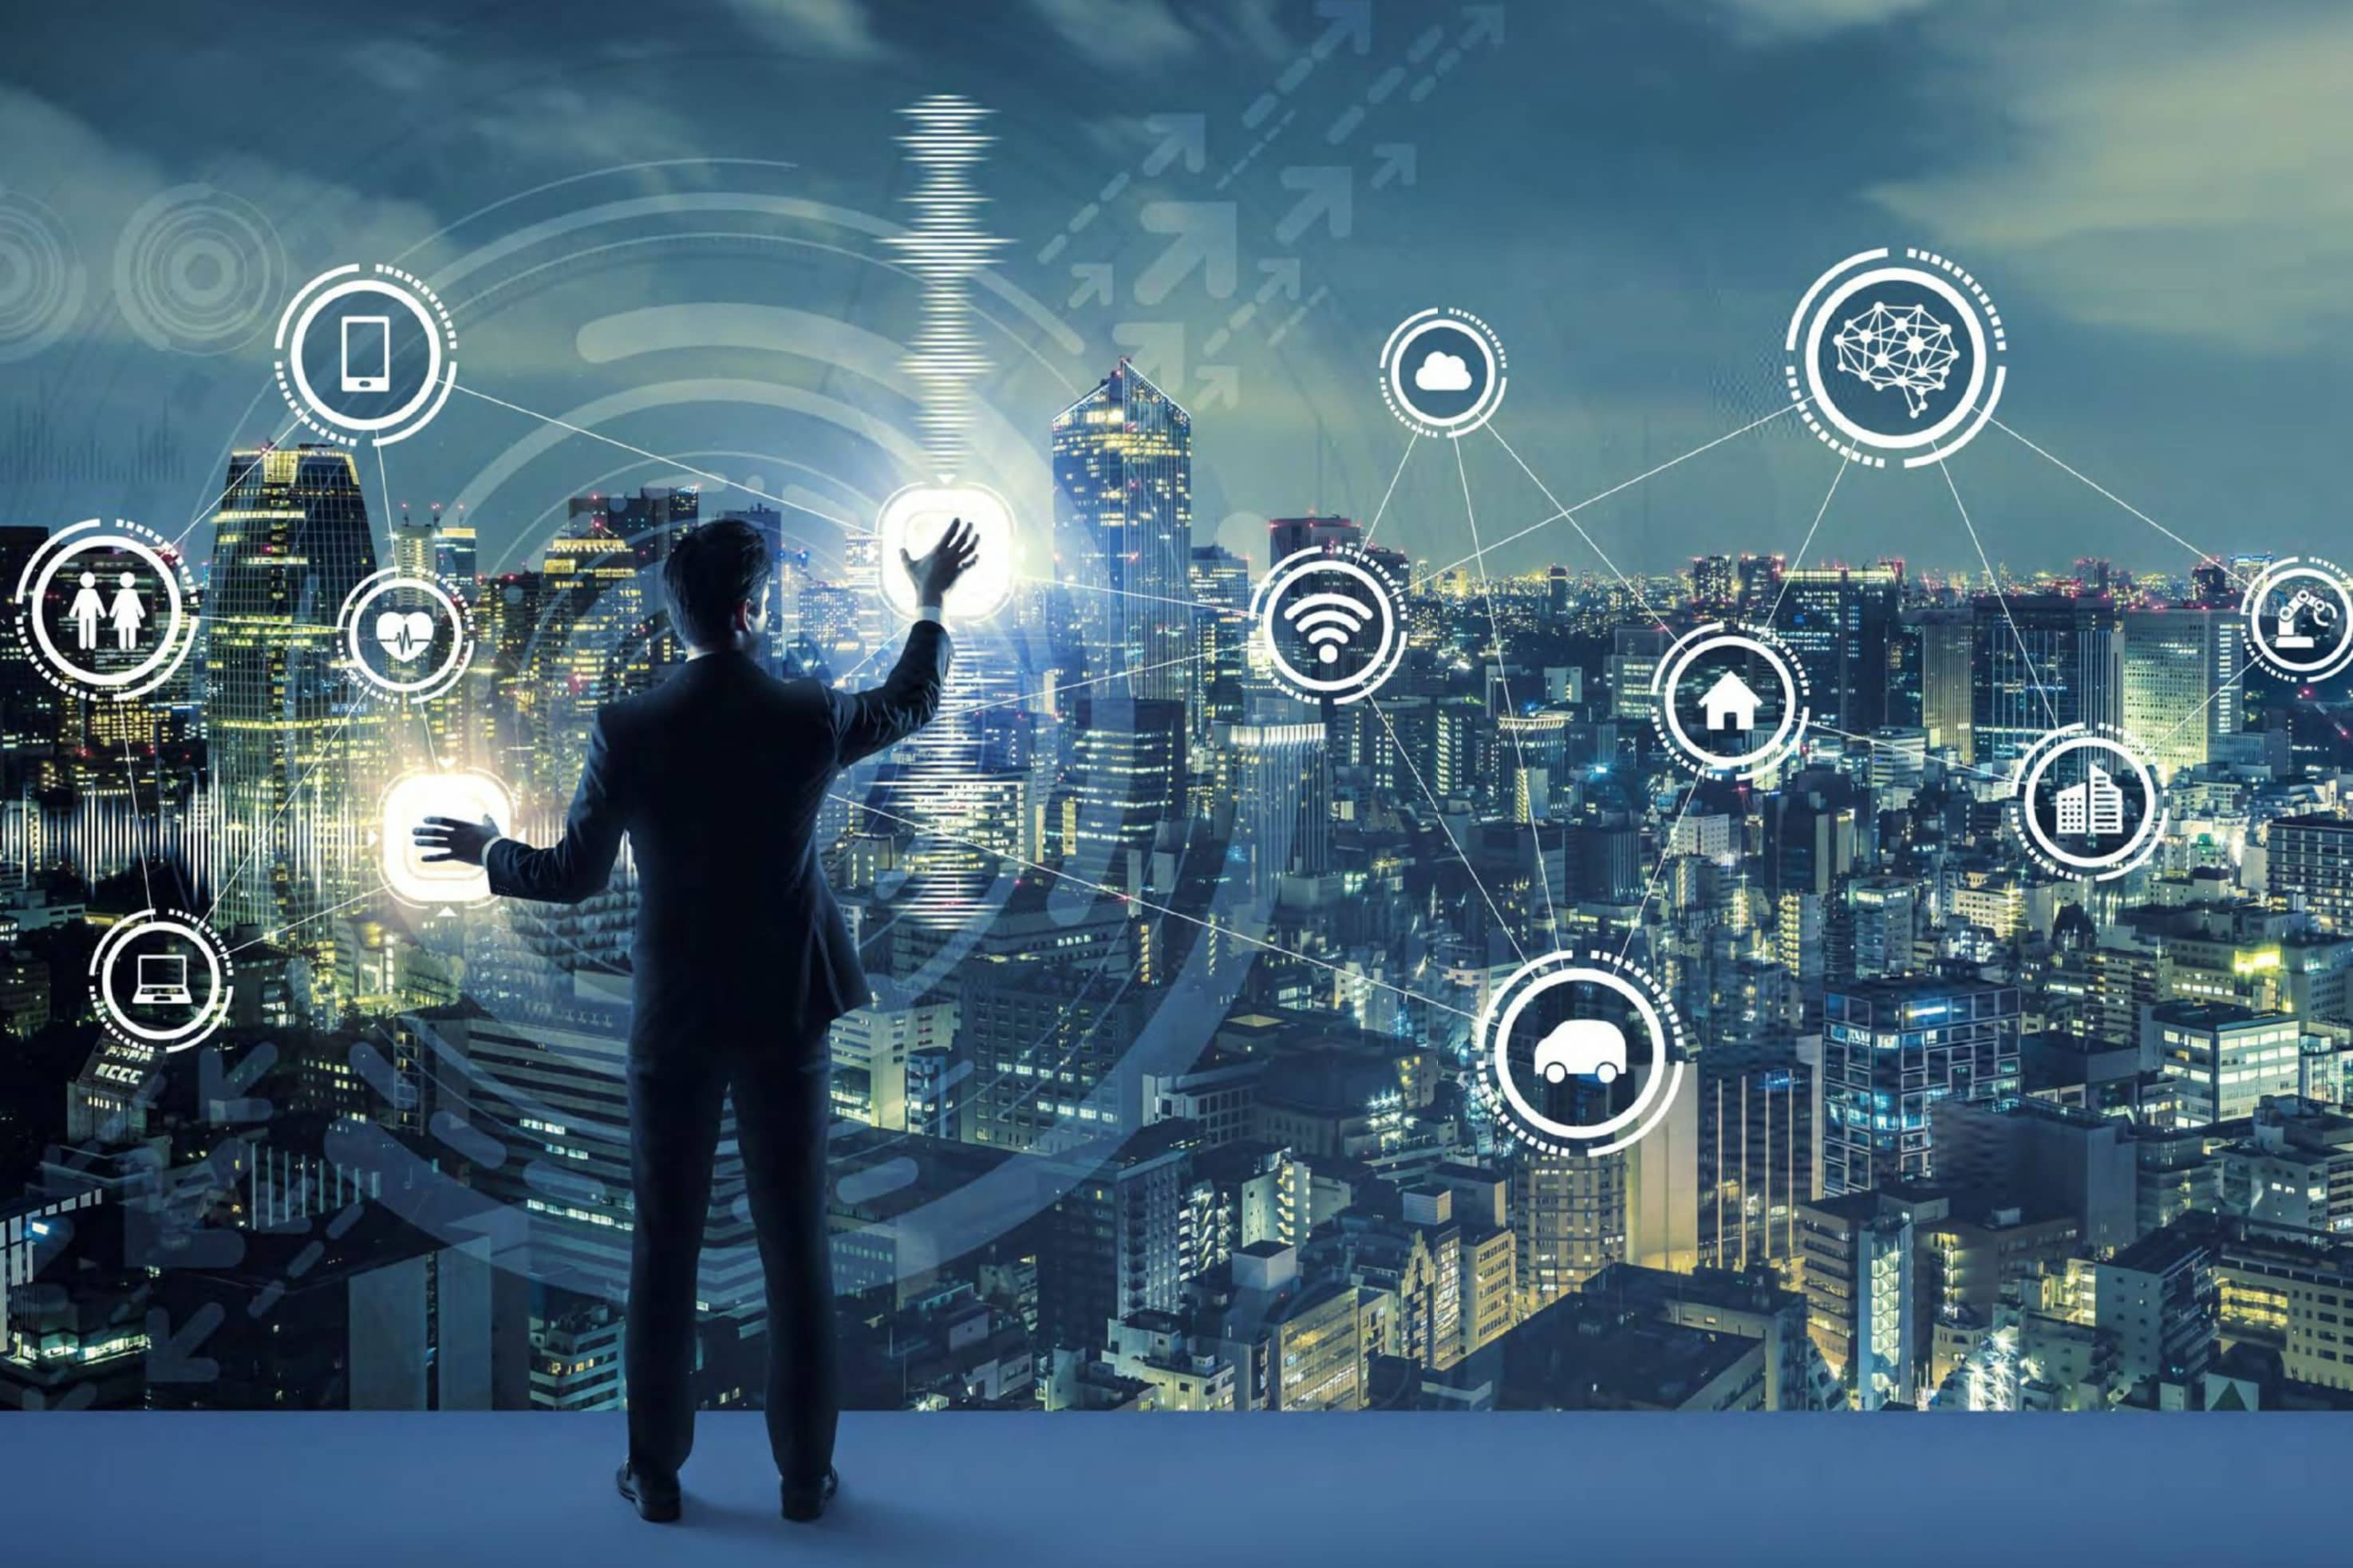 Exploring The Field With Iot